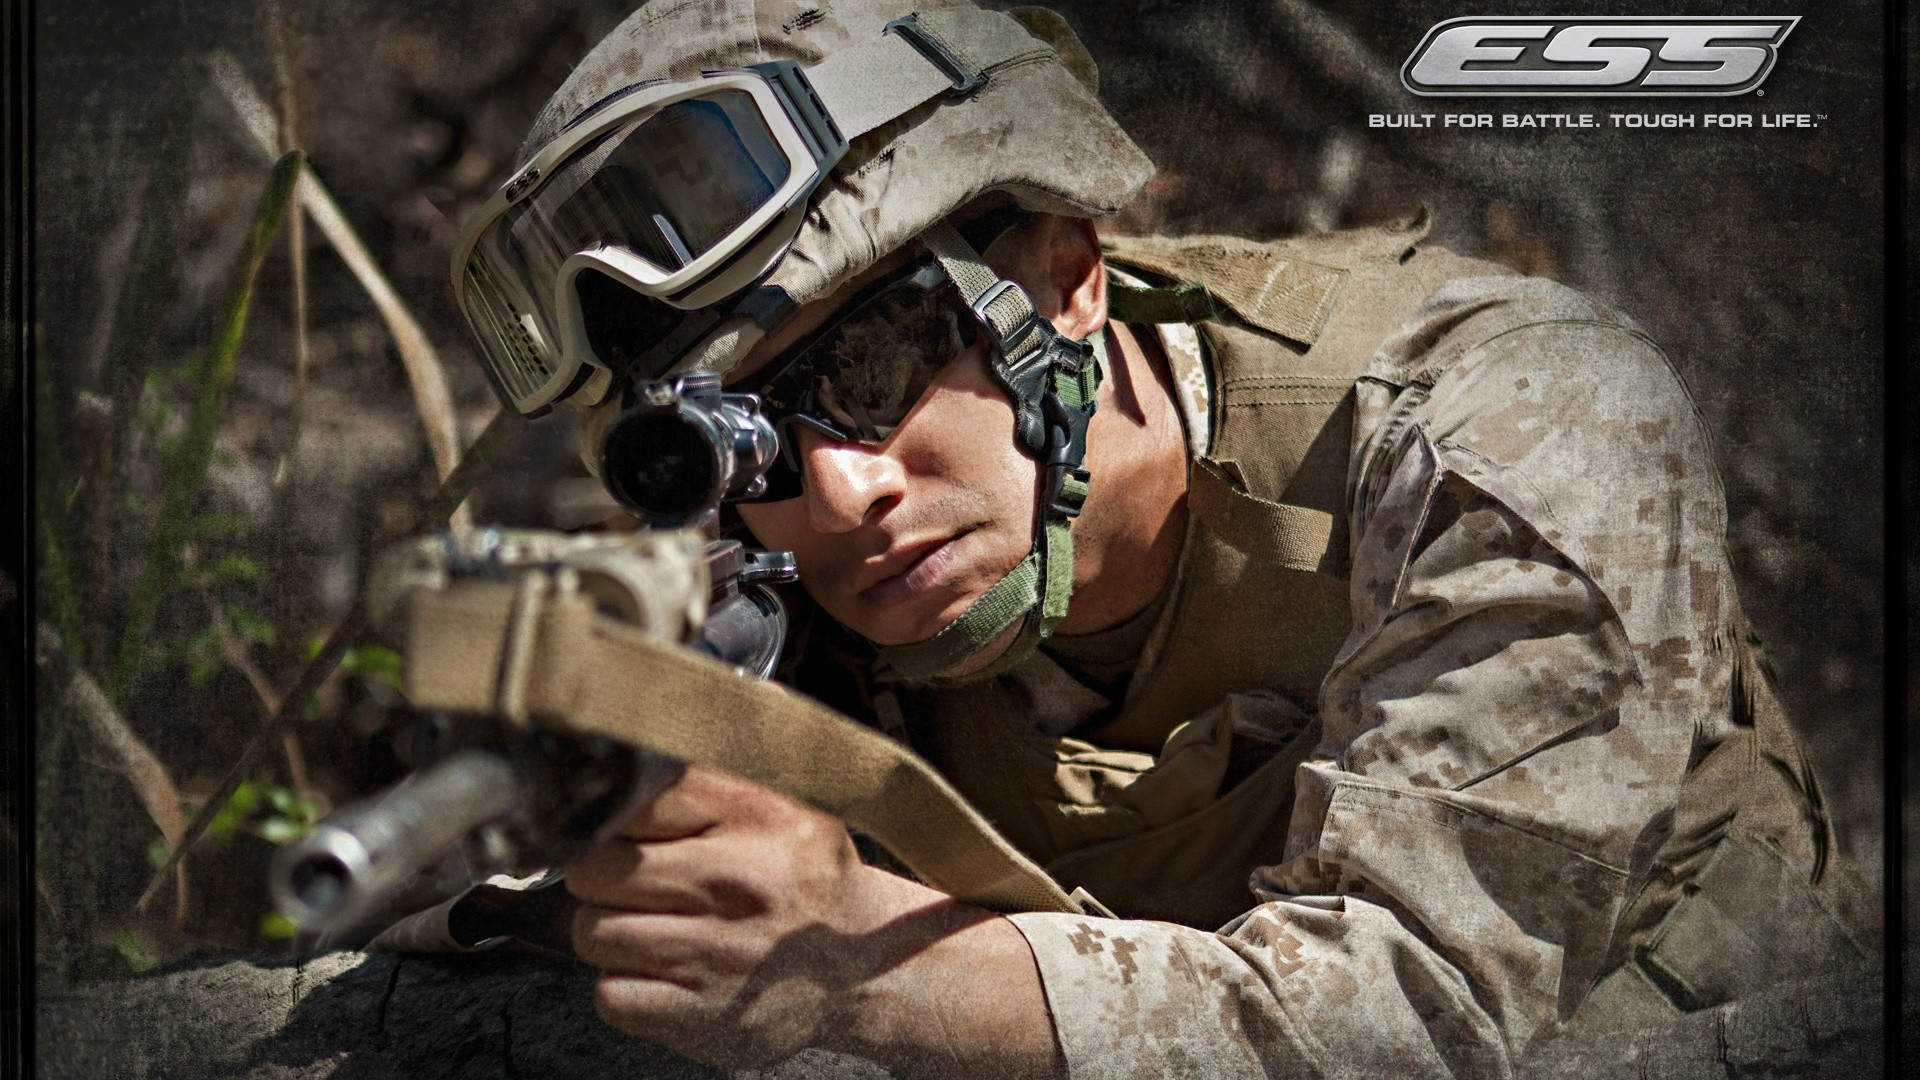 1920x1080 USMC Wallpapers. 12 HD USMC Desktop Wallpapers For Free Download. usmc